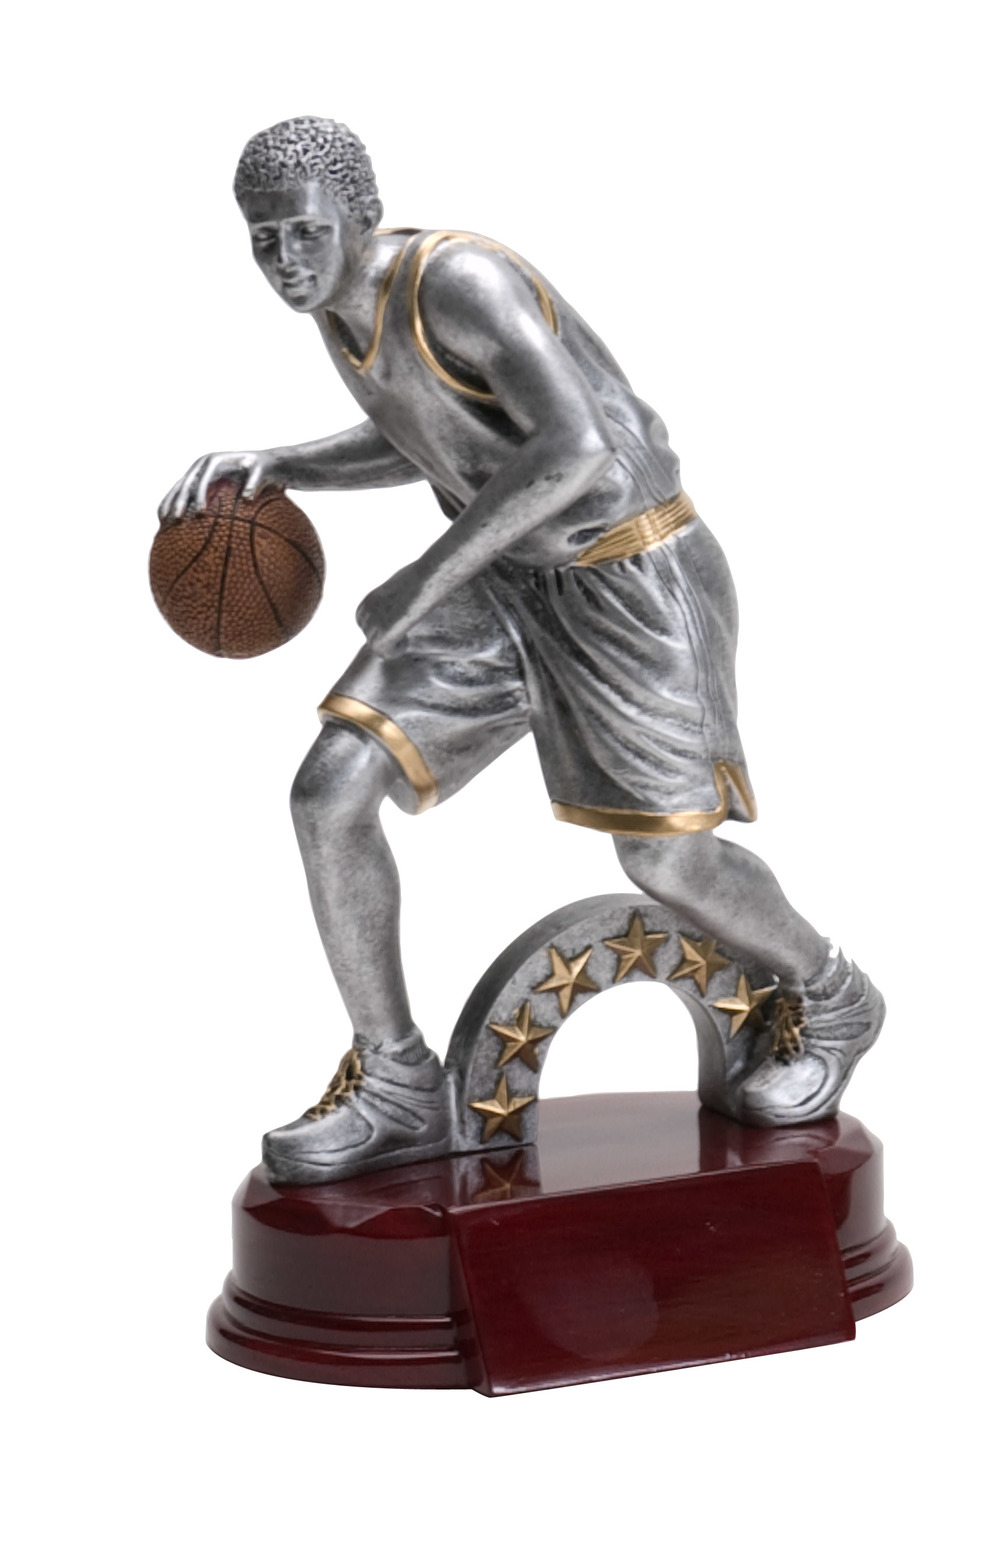 "Basketball, Male:   Large - RFC-1121 - 9.25""  Medium - RFC-921 - 8""  Small - RFC-721 - 5.75"""